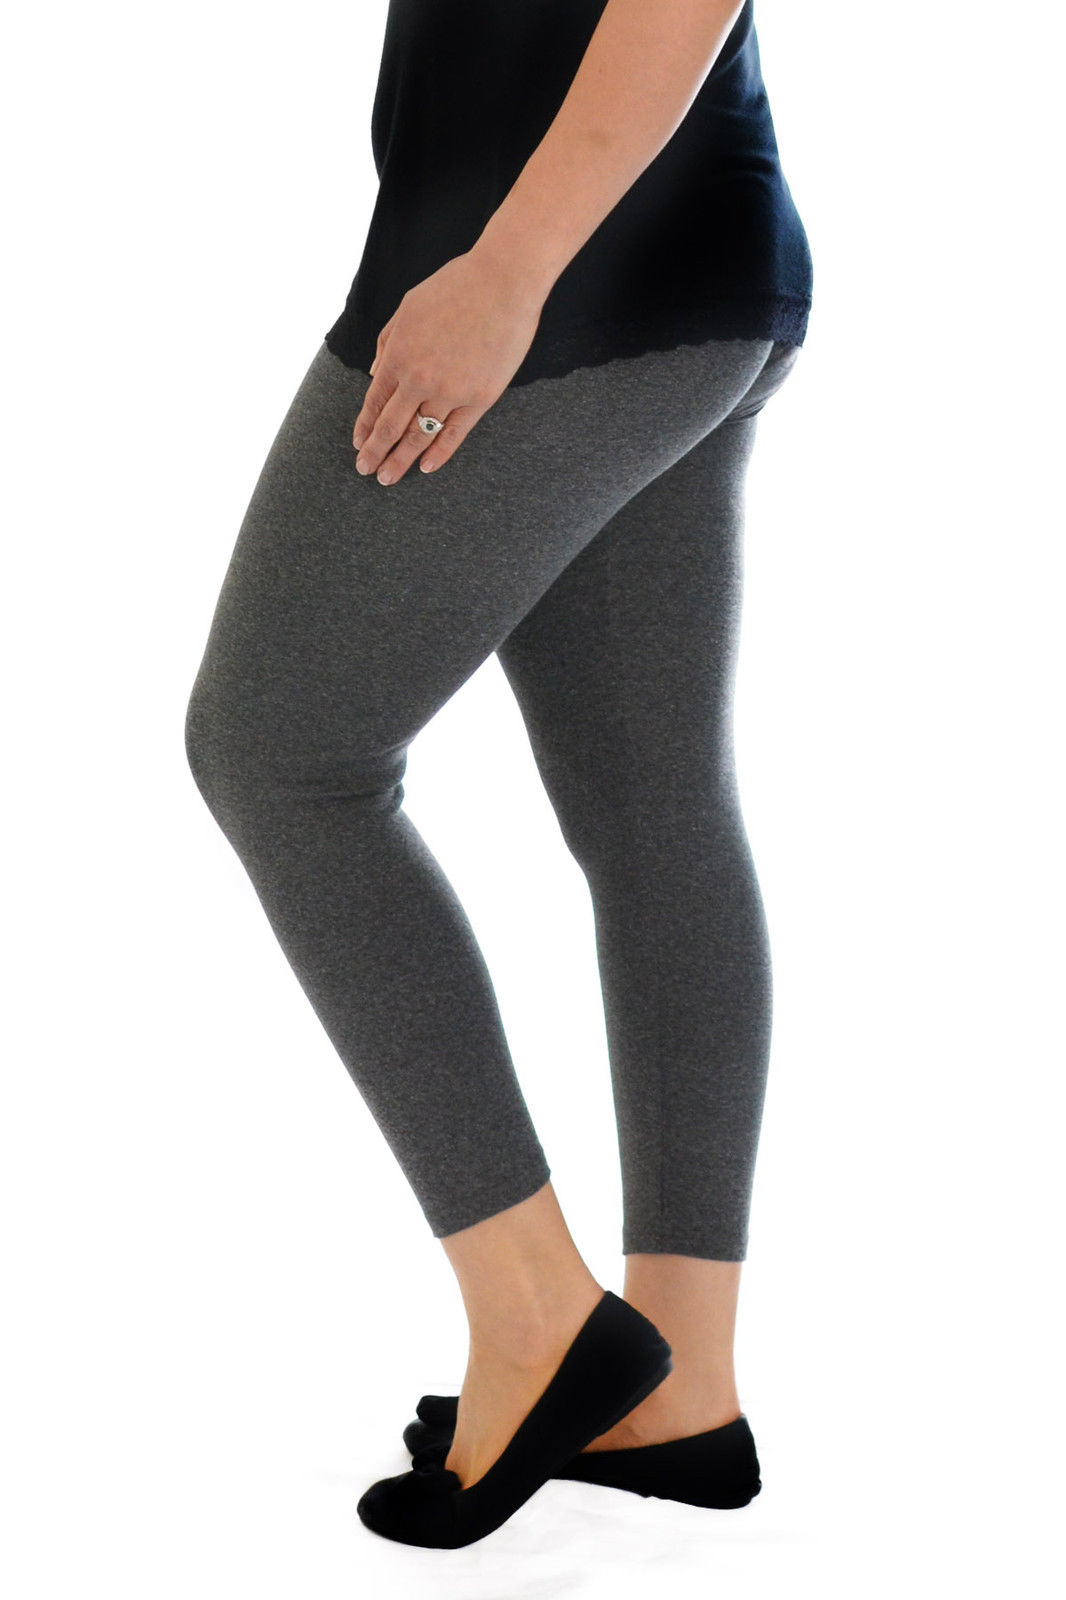 If you need the perfect comfy and warm legging for this up and coming season then these Thick Fleece Lined Leggings will make you love the cooler weather. These warm thick leggings are ideal to keep you warm when the wind blows a little cooler and the air is a little less inviting. Theses wonderful leggings come in four fabulous colors, black, purple, brown and navy.5/5(1).